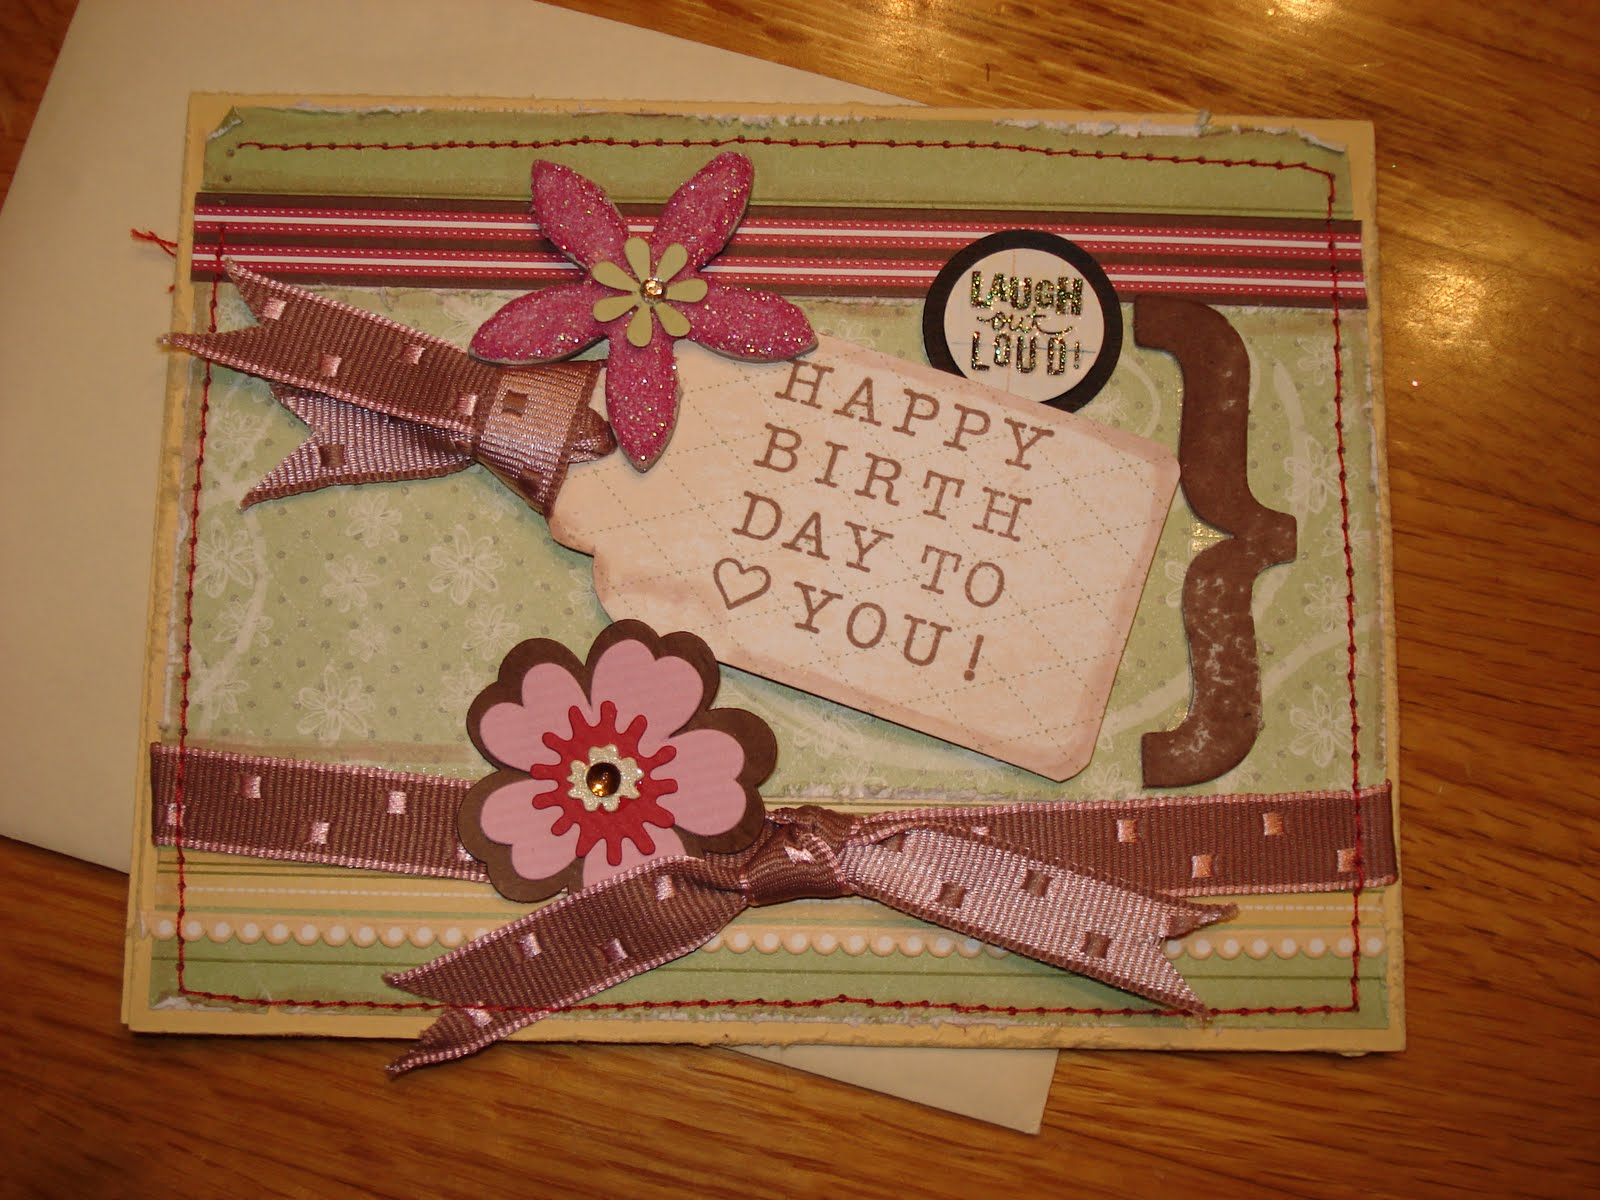 marias handmade cards: Happy birthday handmade card idea